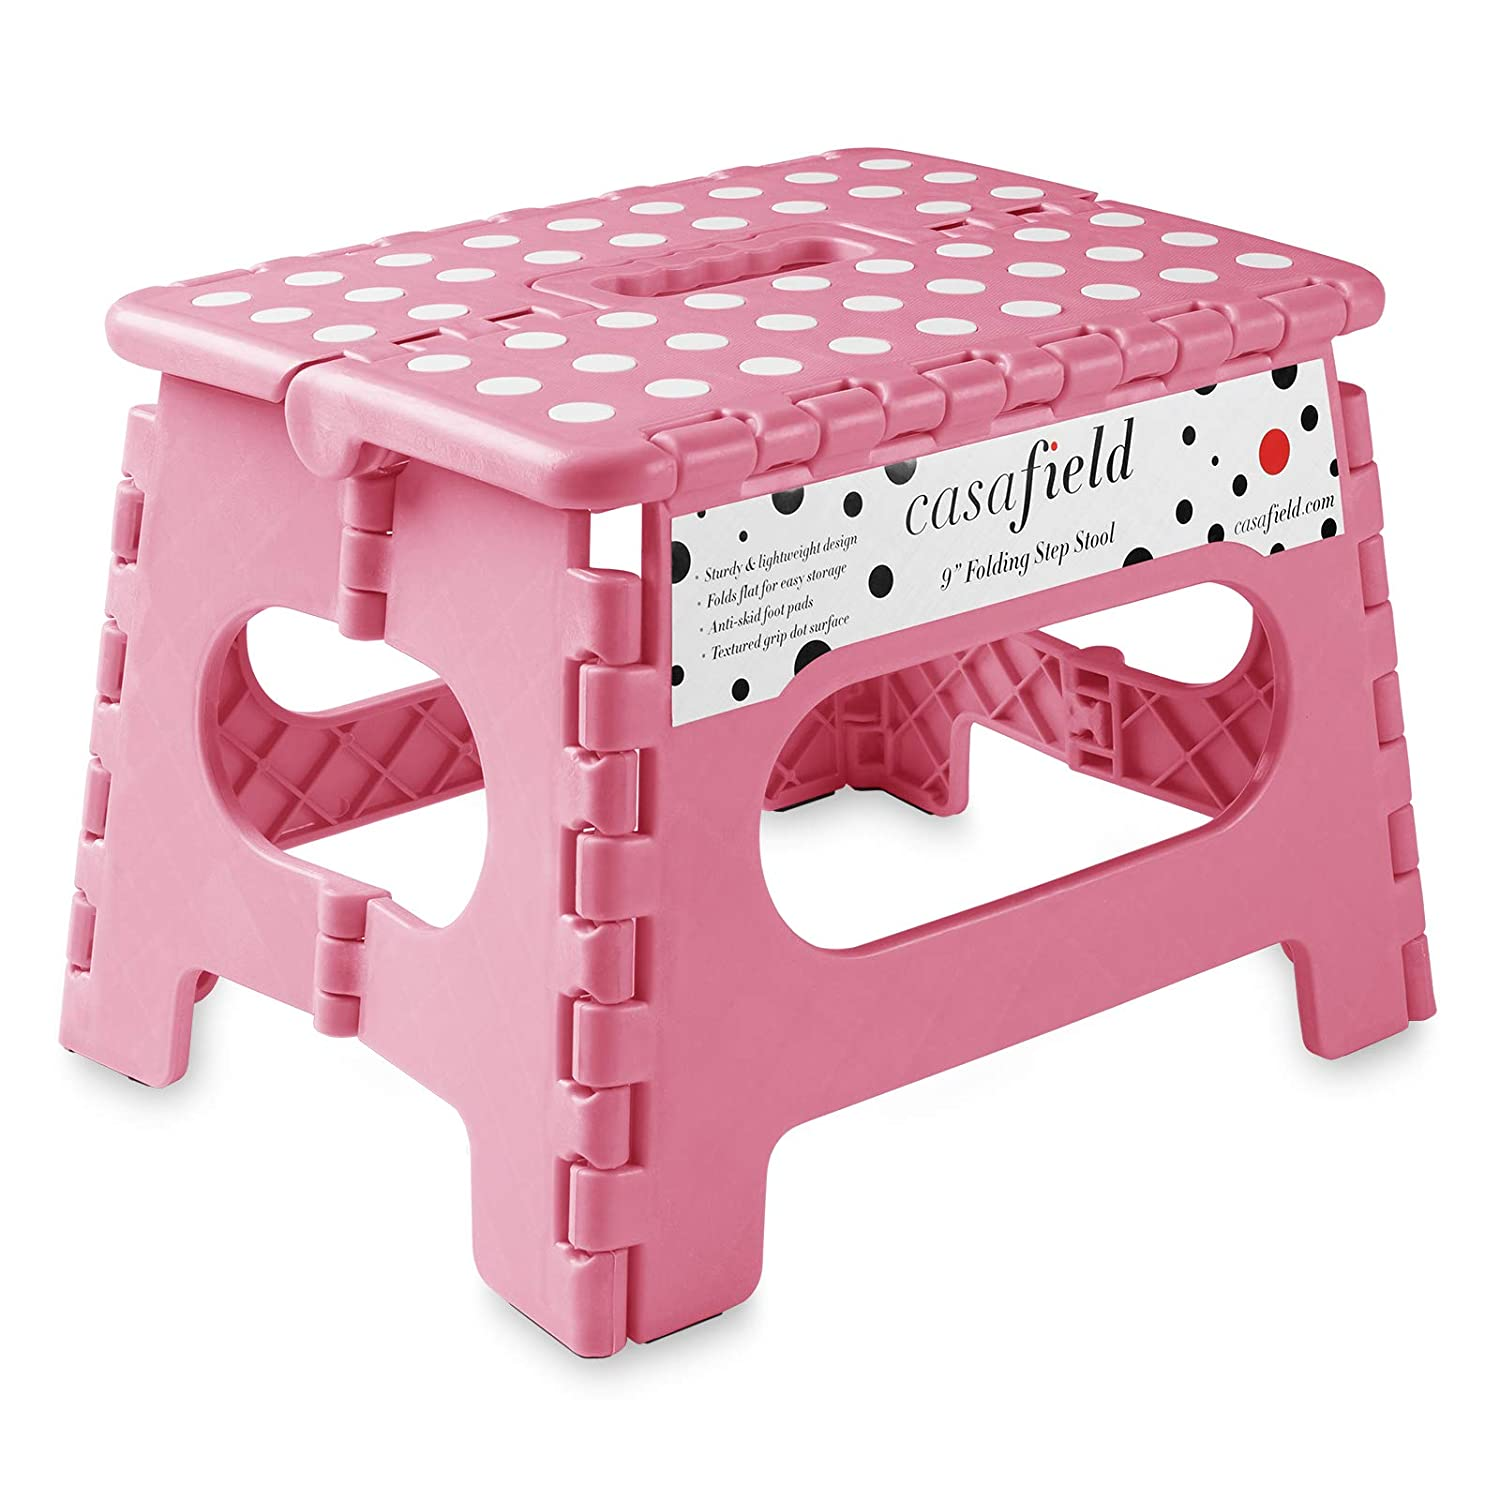 "Casafield 9"" Folding Step Stool with Handle, Pink - Portable Collapsible Small Plastic Foot Stool for Kids and Adults - Use in The Kitchen, Bathroom and Bedroom"